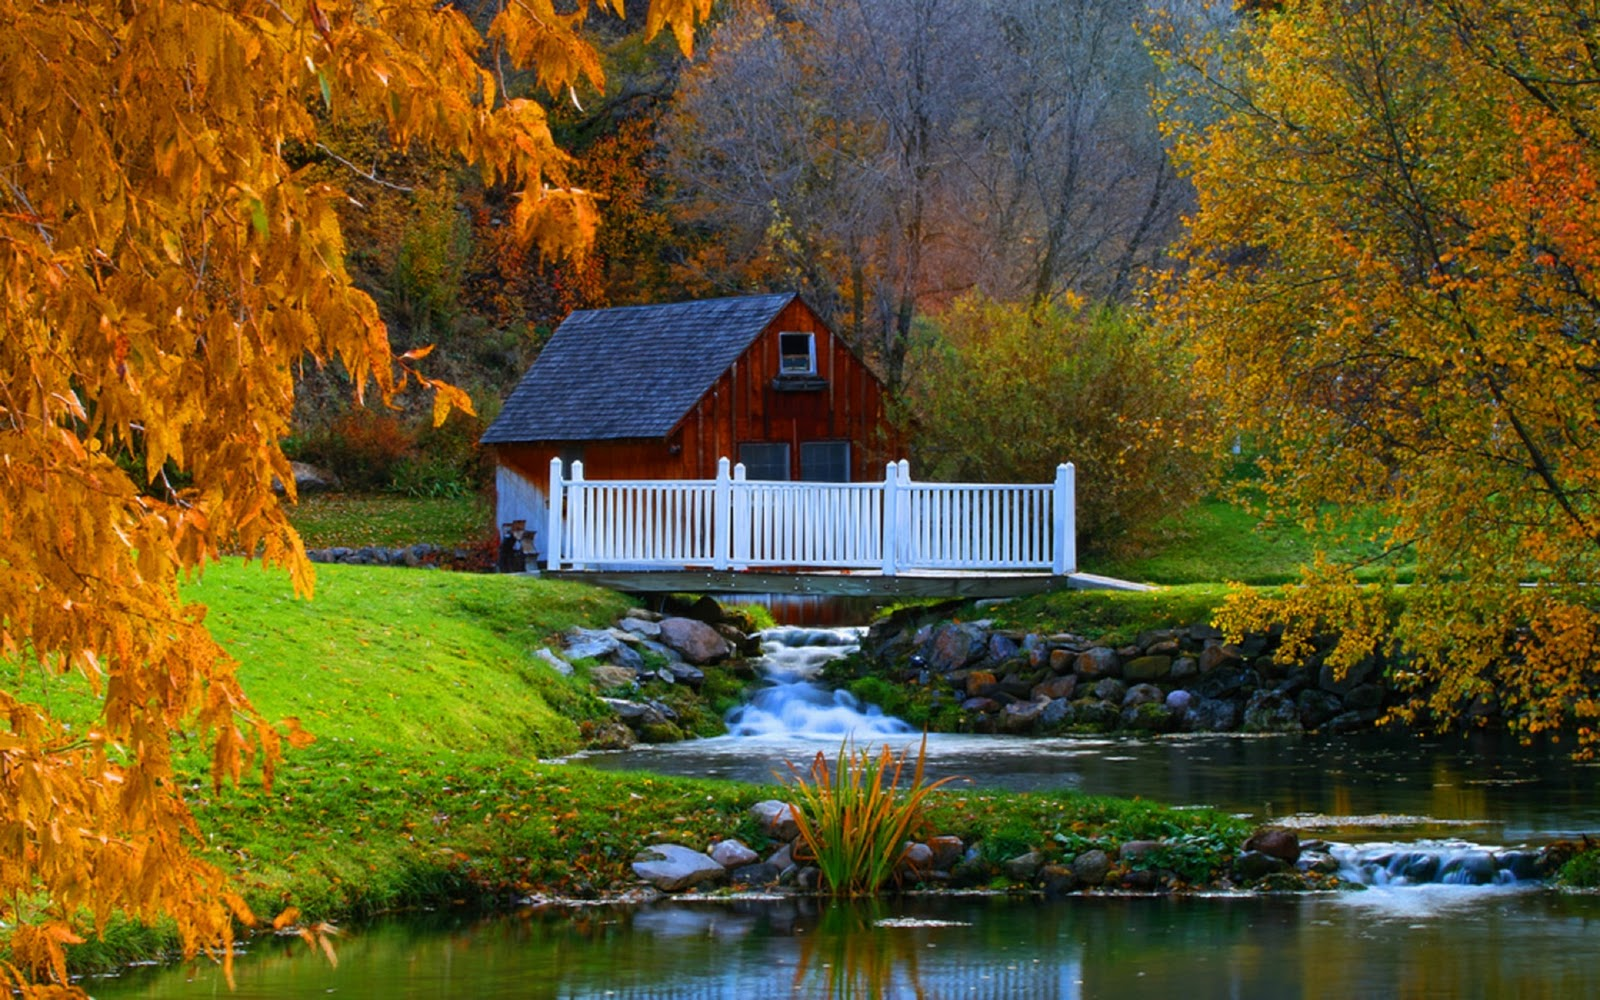 Autumn season hd wallpapers nice wallpapers for Beautiful house hd image